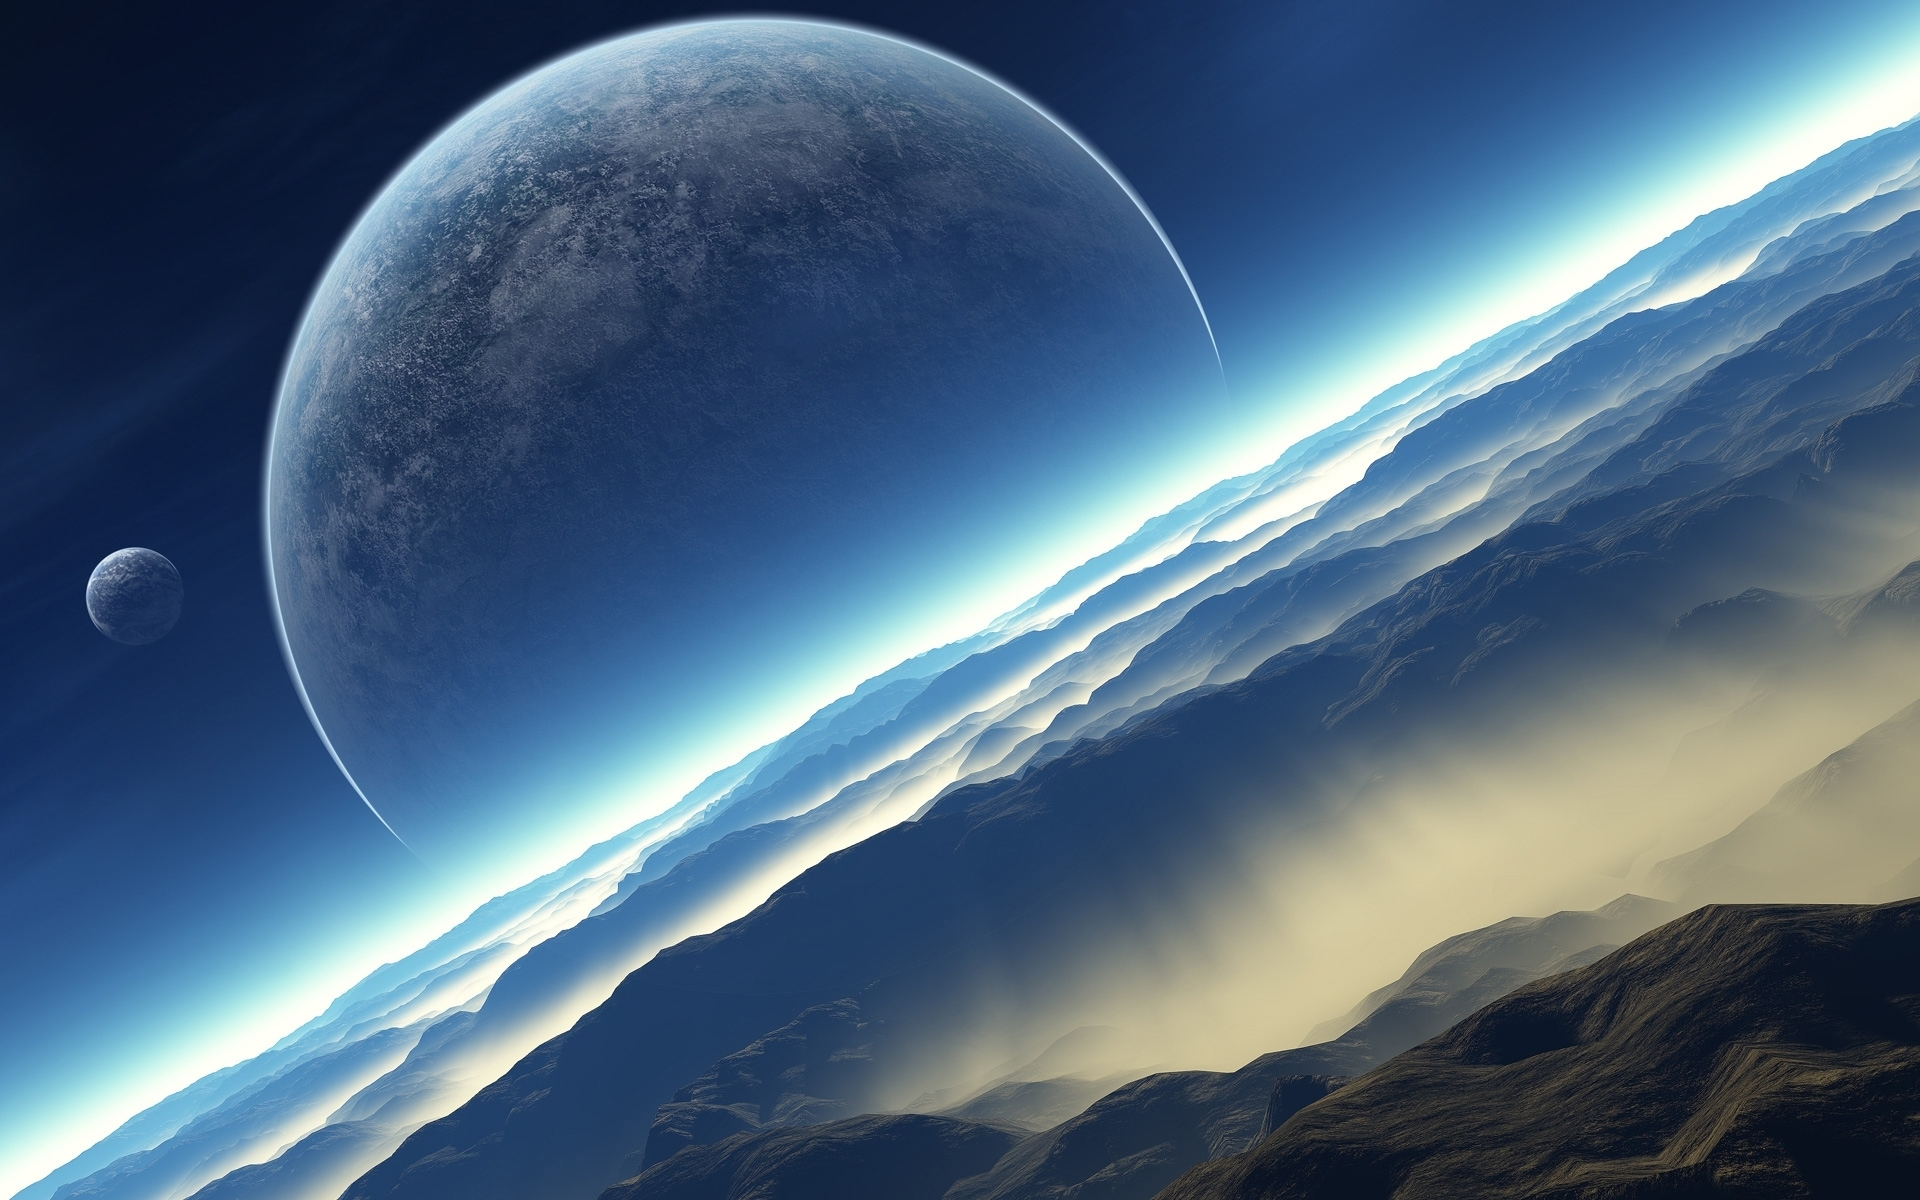 Space Desktop Wallpaper 1920x1200